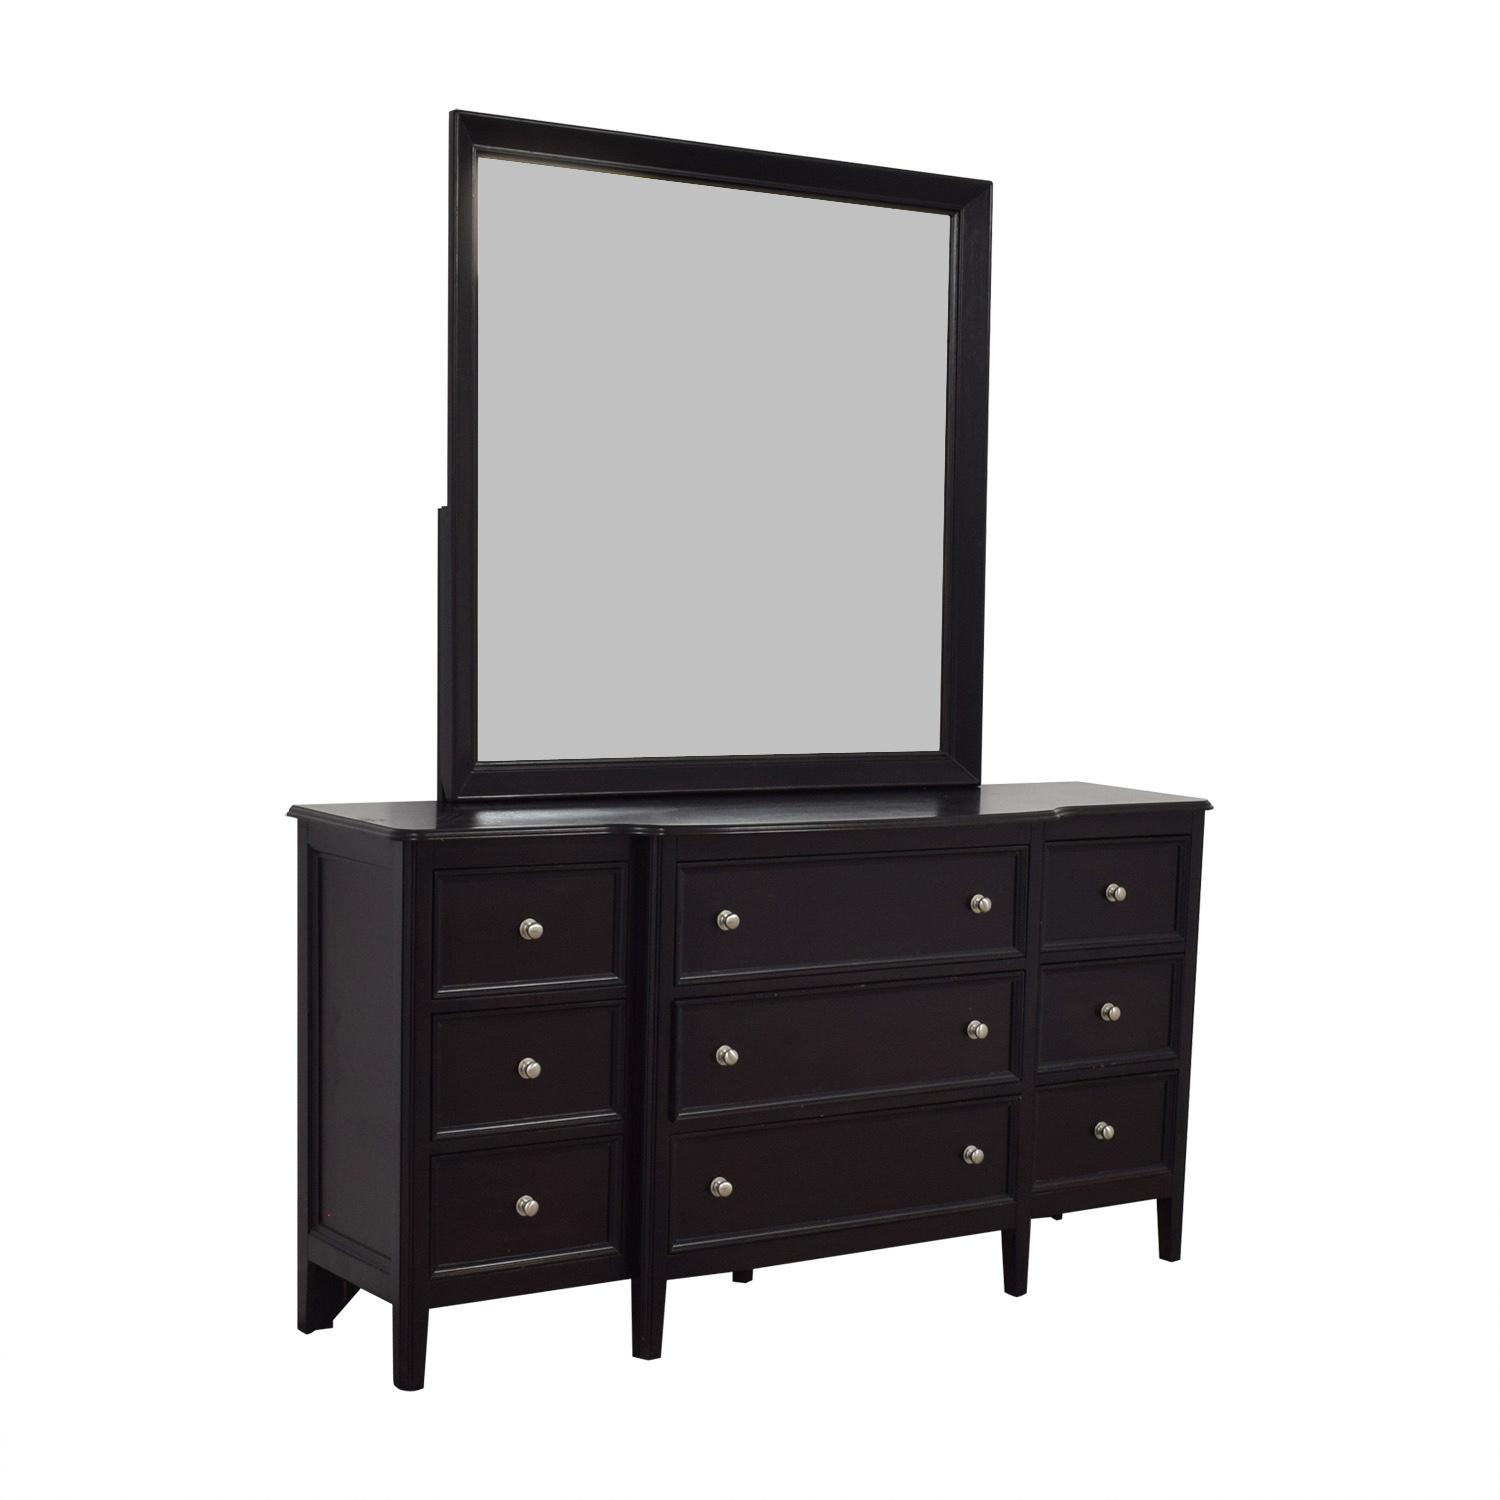 Raymour and Flanigan Raymour & Flanigan Nine-Drawer Dresser with Mirror